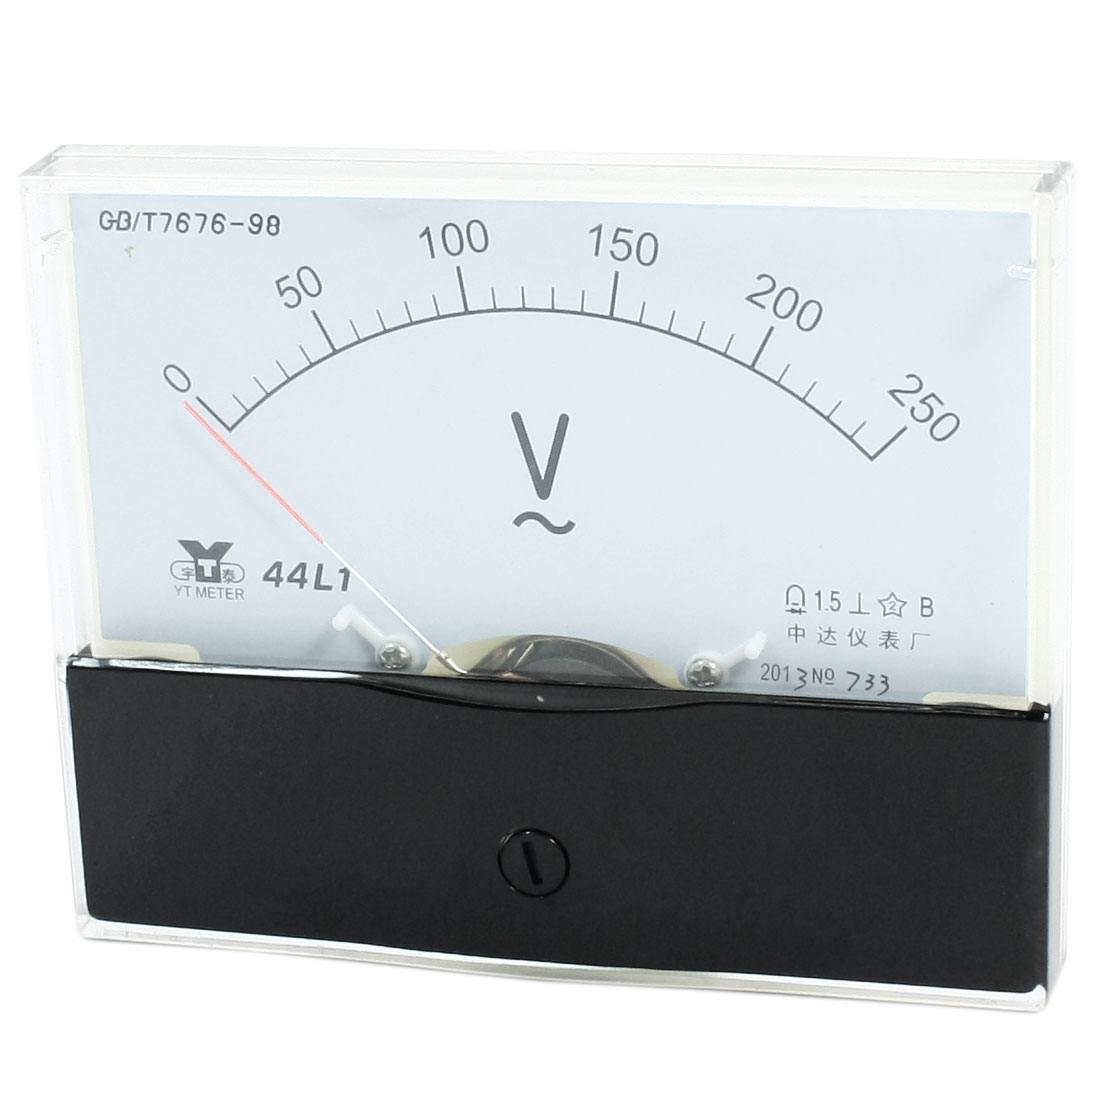 Rectangle Measurement Tool Analog Panel Voltmeter Volt Meter AC 0 - 250V Measuring Range 44L1